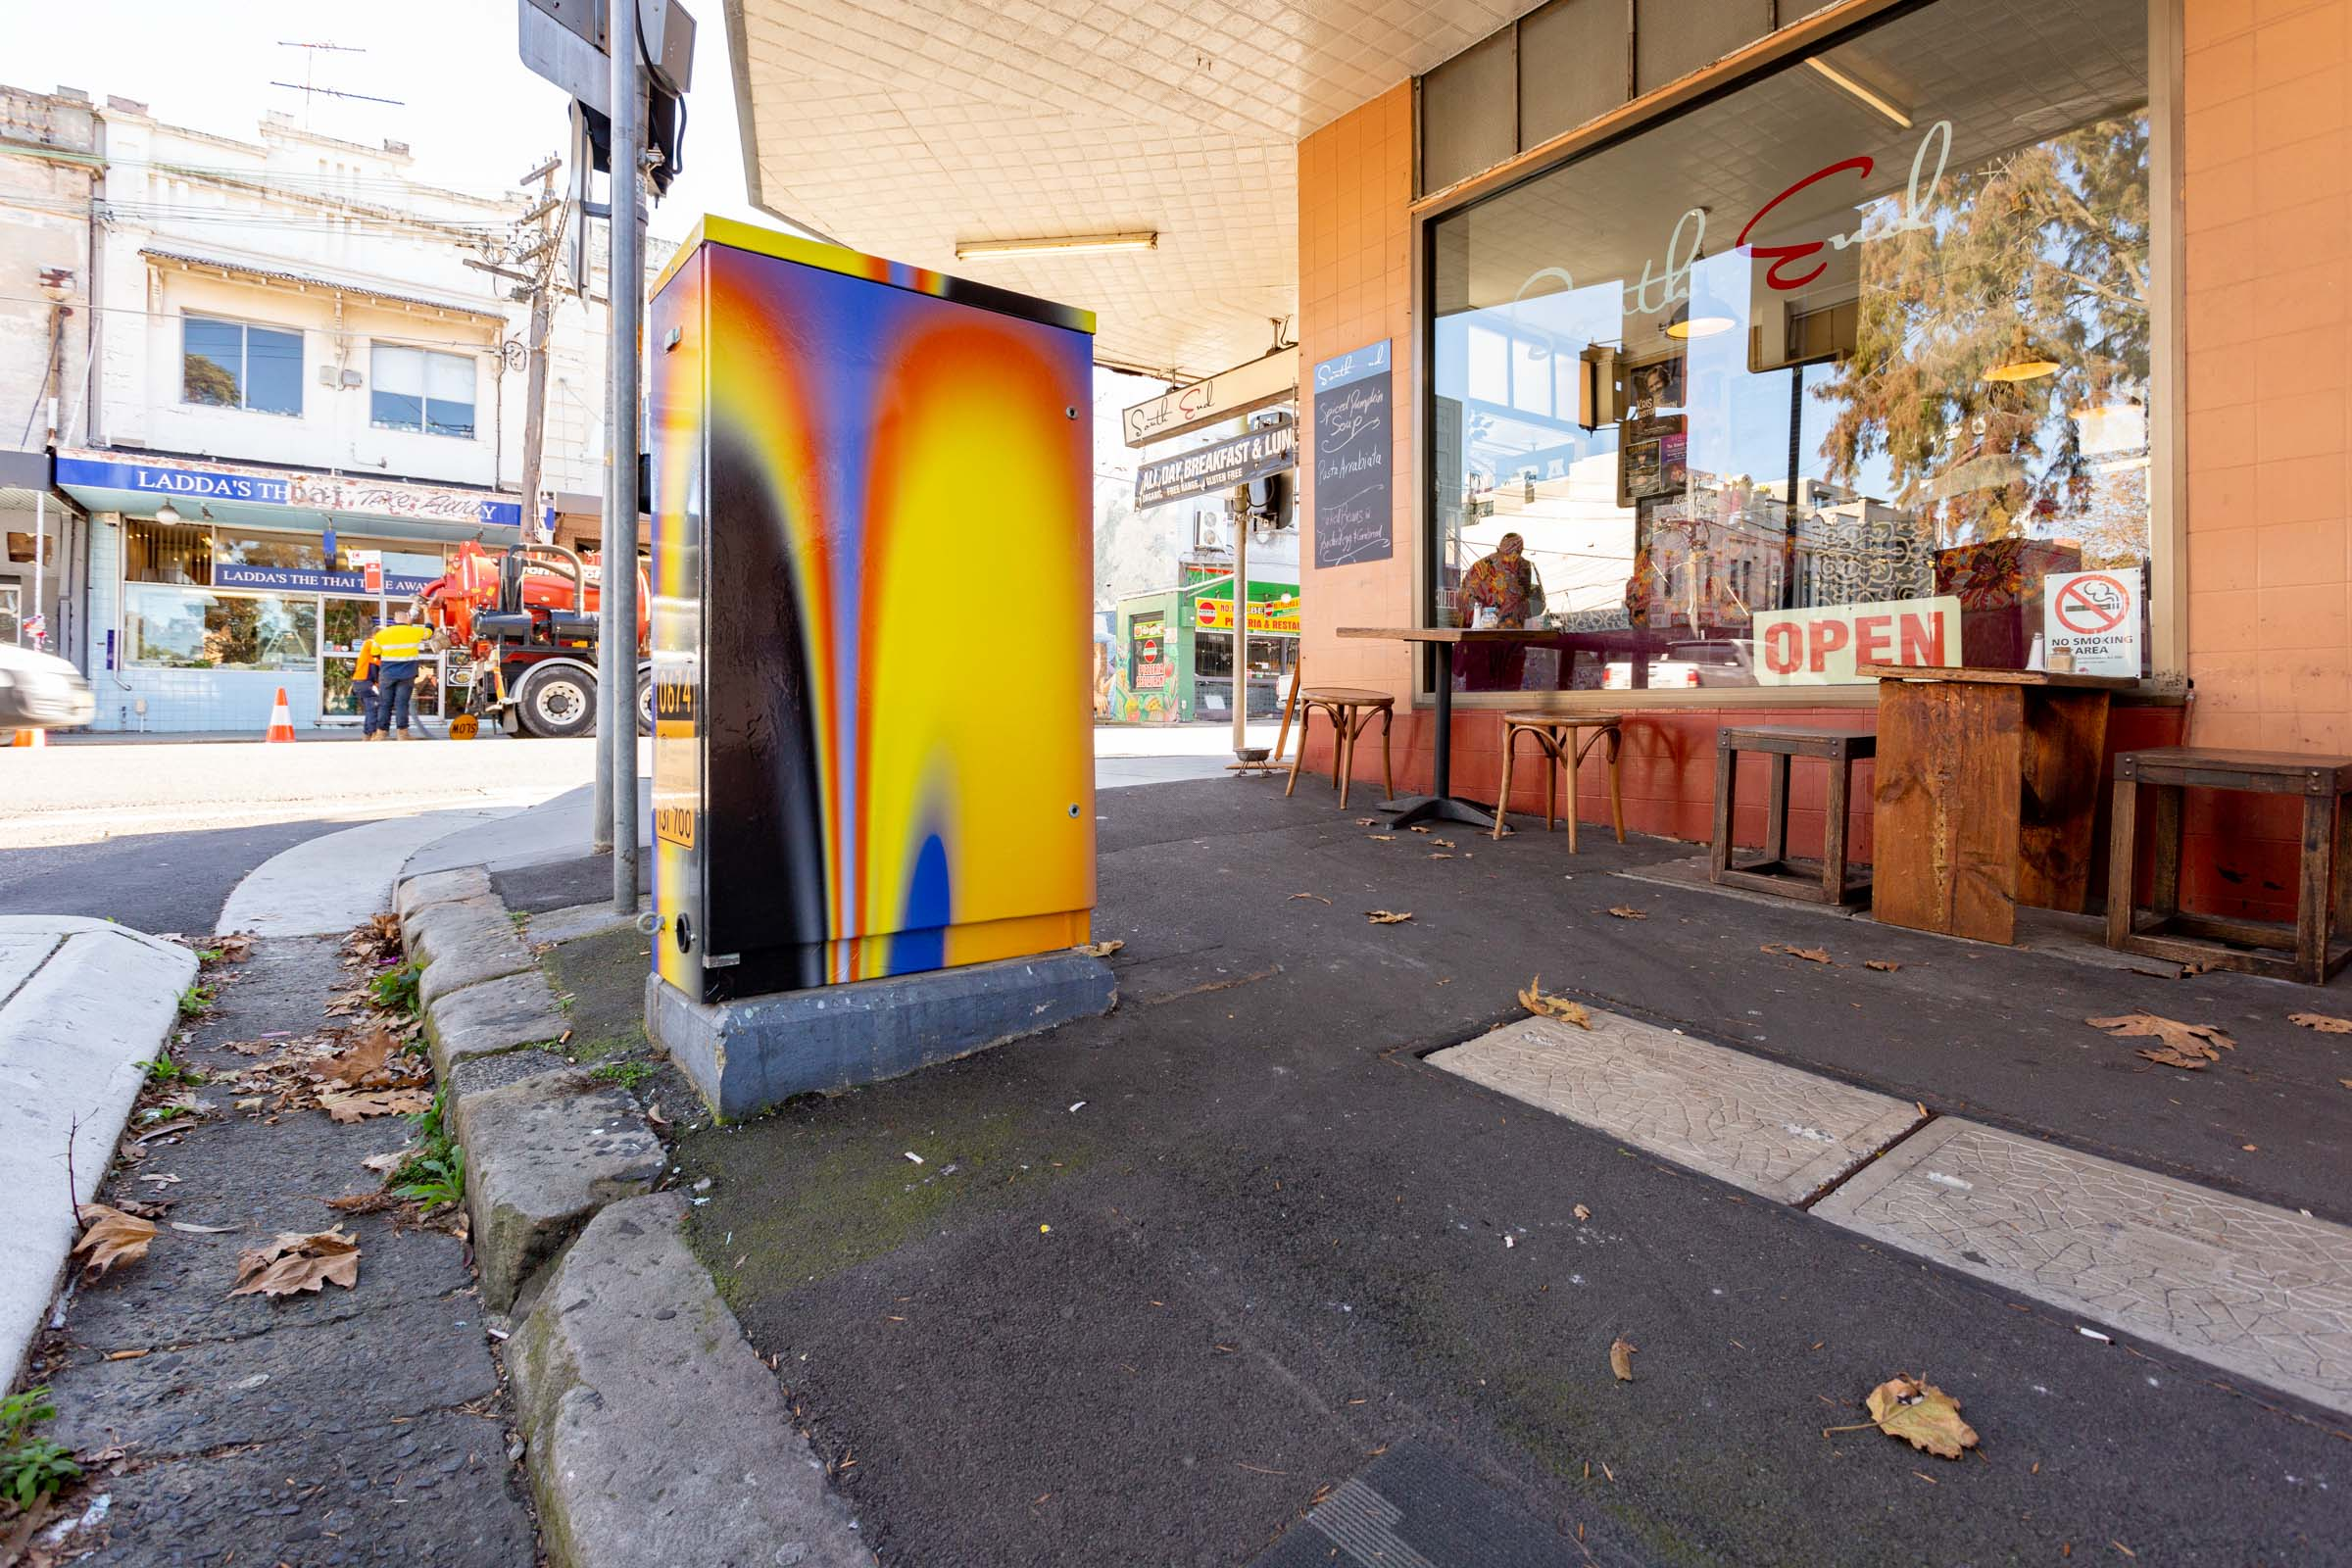 Kris Andrew Small's signal box at King Street and Darley Street. Image Credit: Art Pharmacy Consulting / Jodie Barker